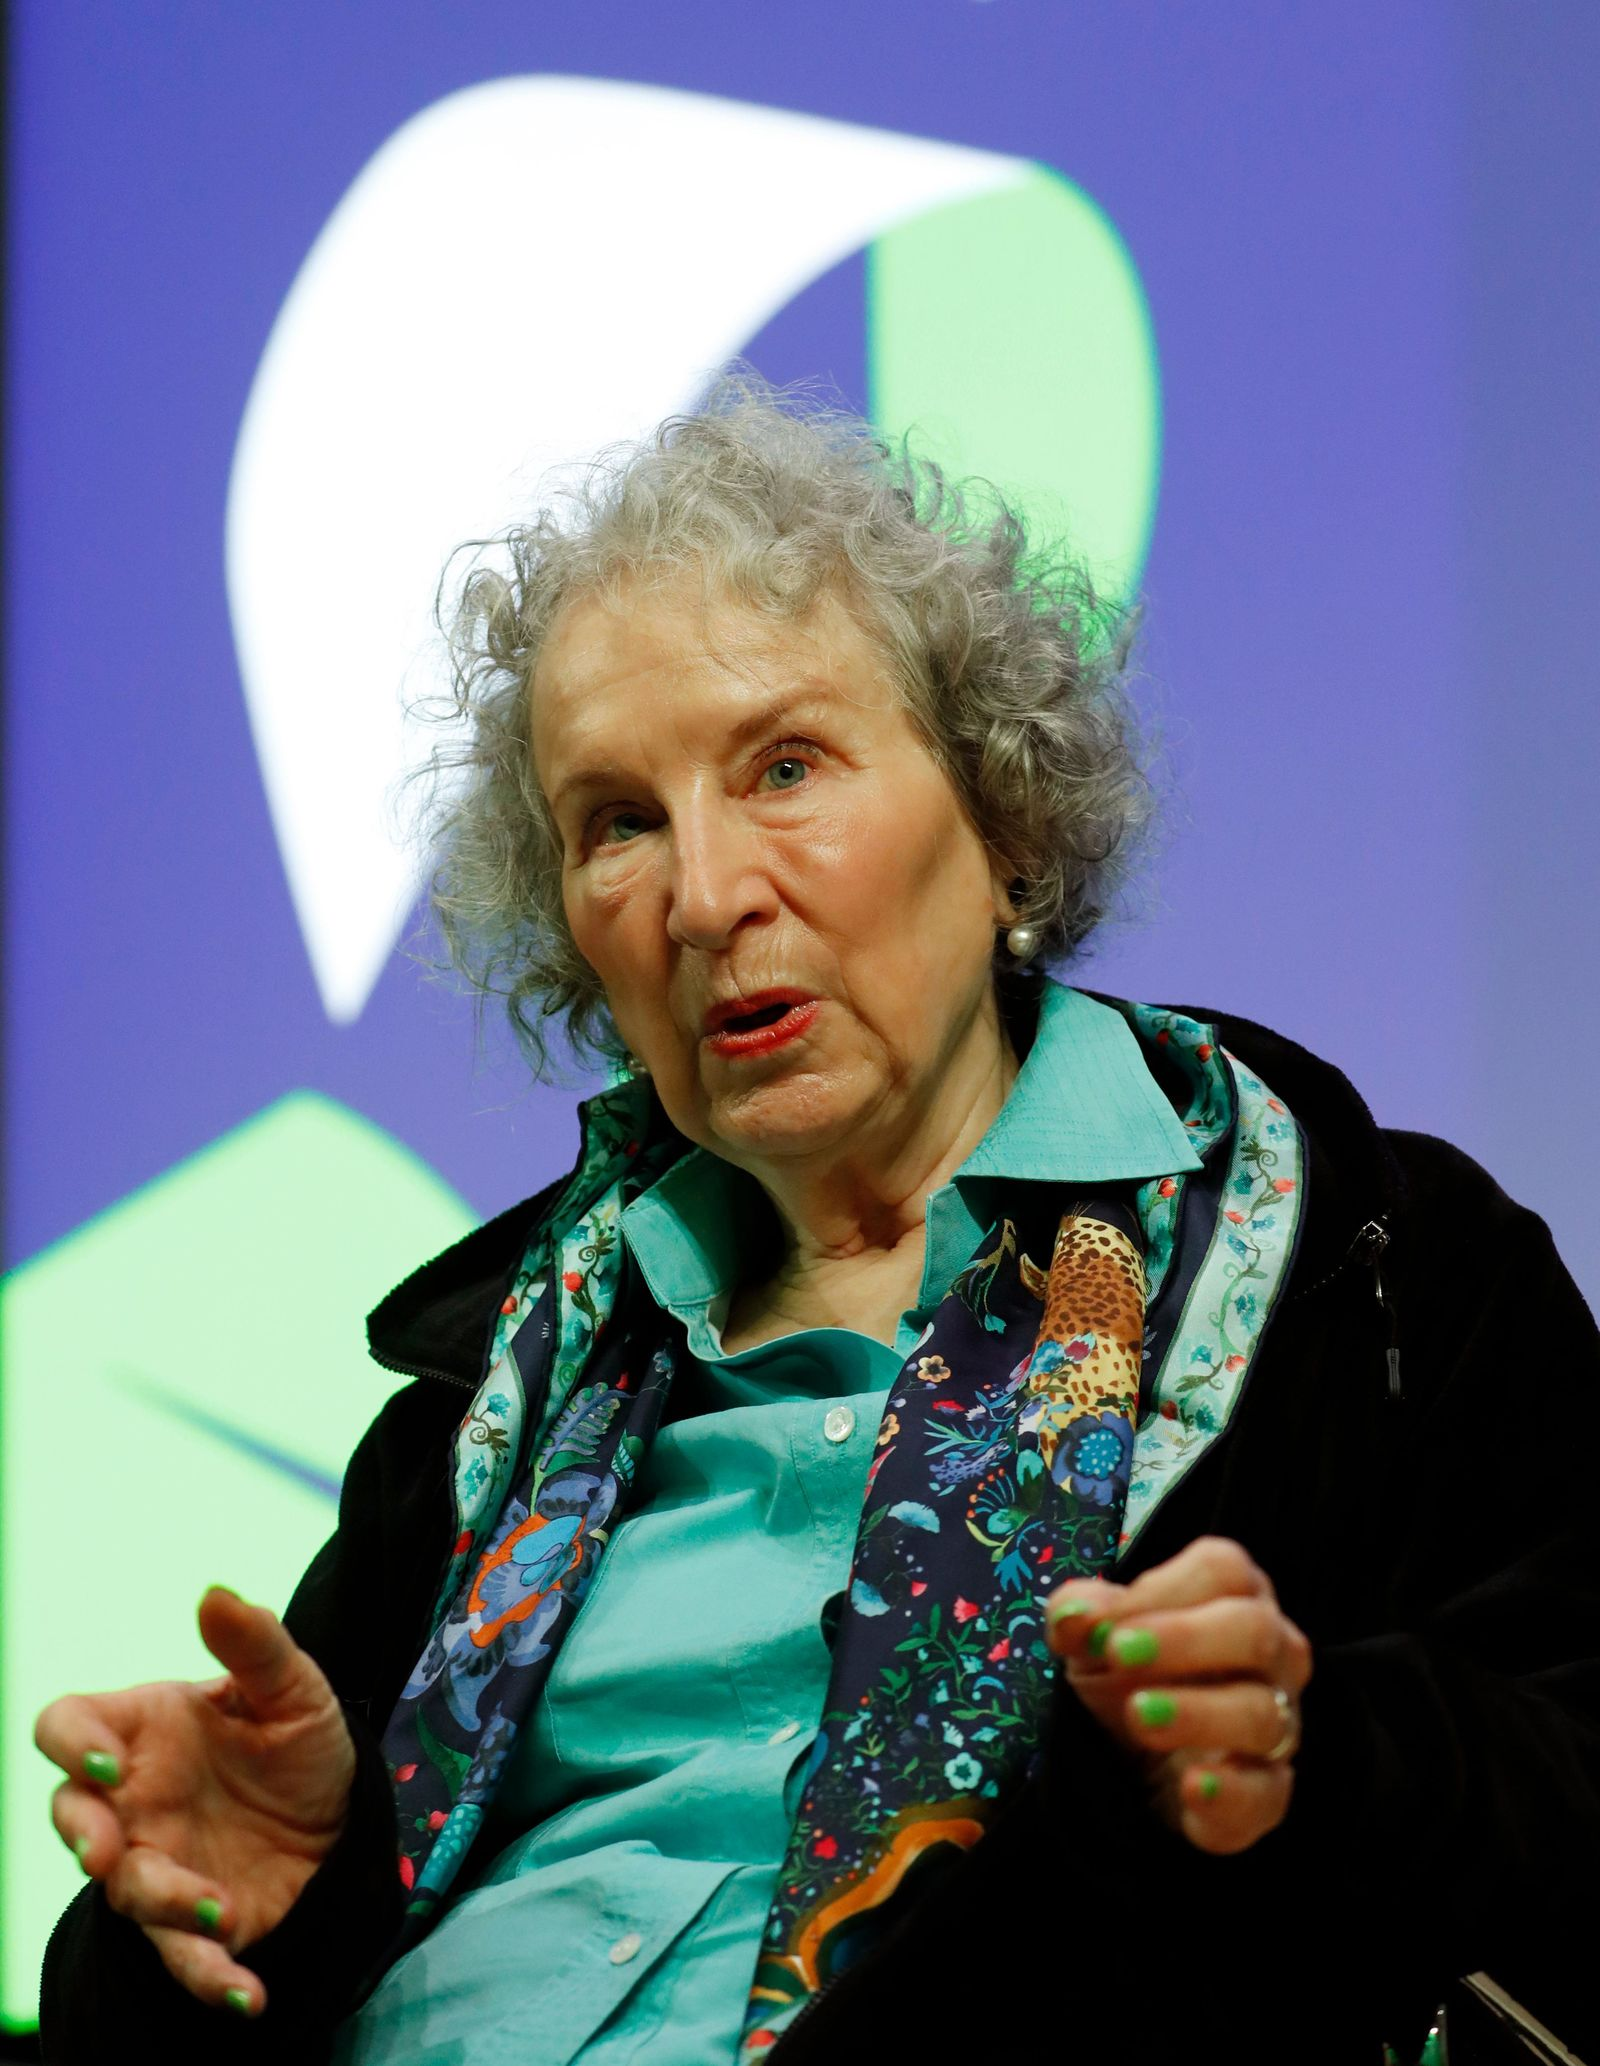 Canadian author Margaret Atwood speaks during a press conference at the British Library to launch her new book 'The Testaments' in London, Tuesday, Sept. 10, 2019. (AP Photo/Alastair Grant)